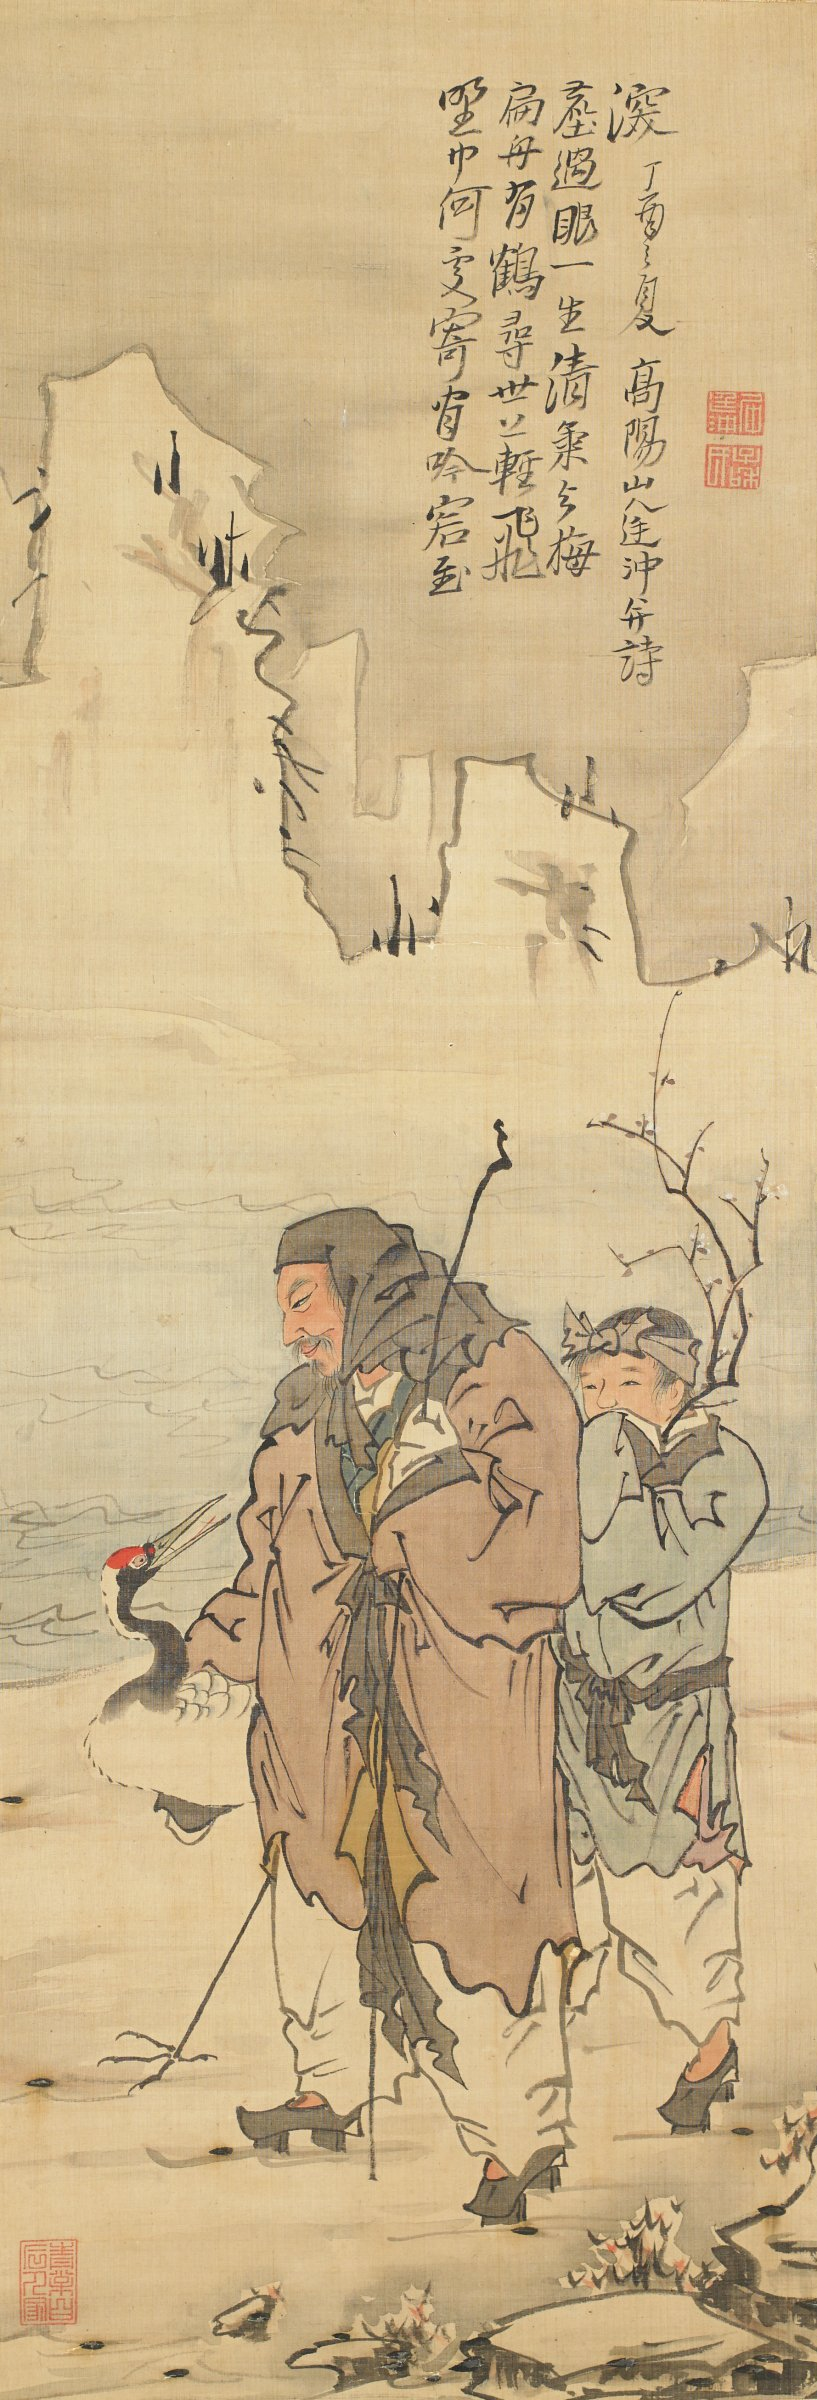 The Sage Lin Hoqing standing in a snowy landscape with an attendant and a crane nearby.????;